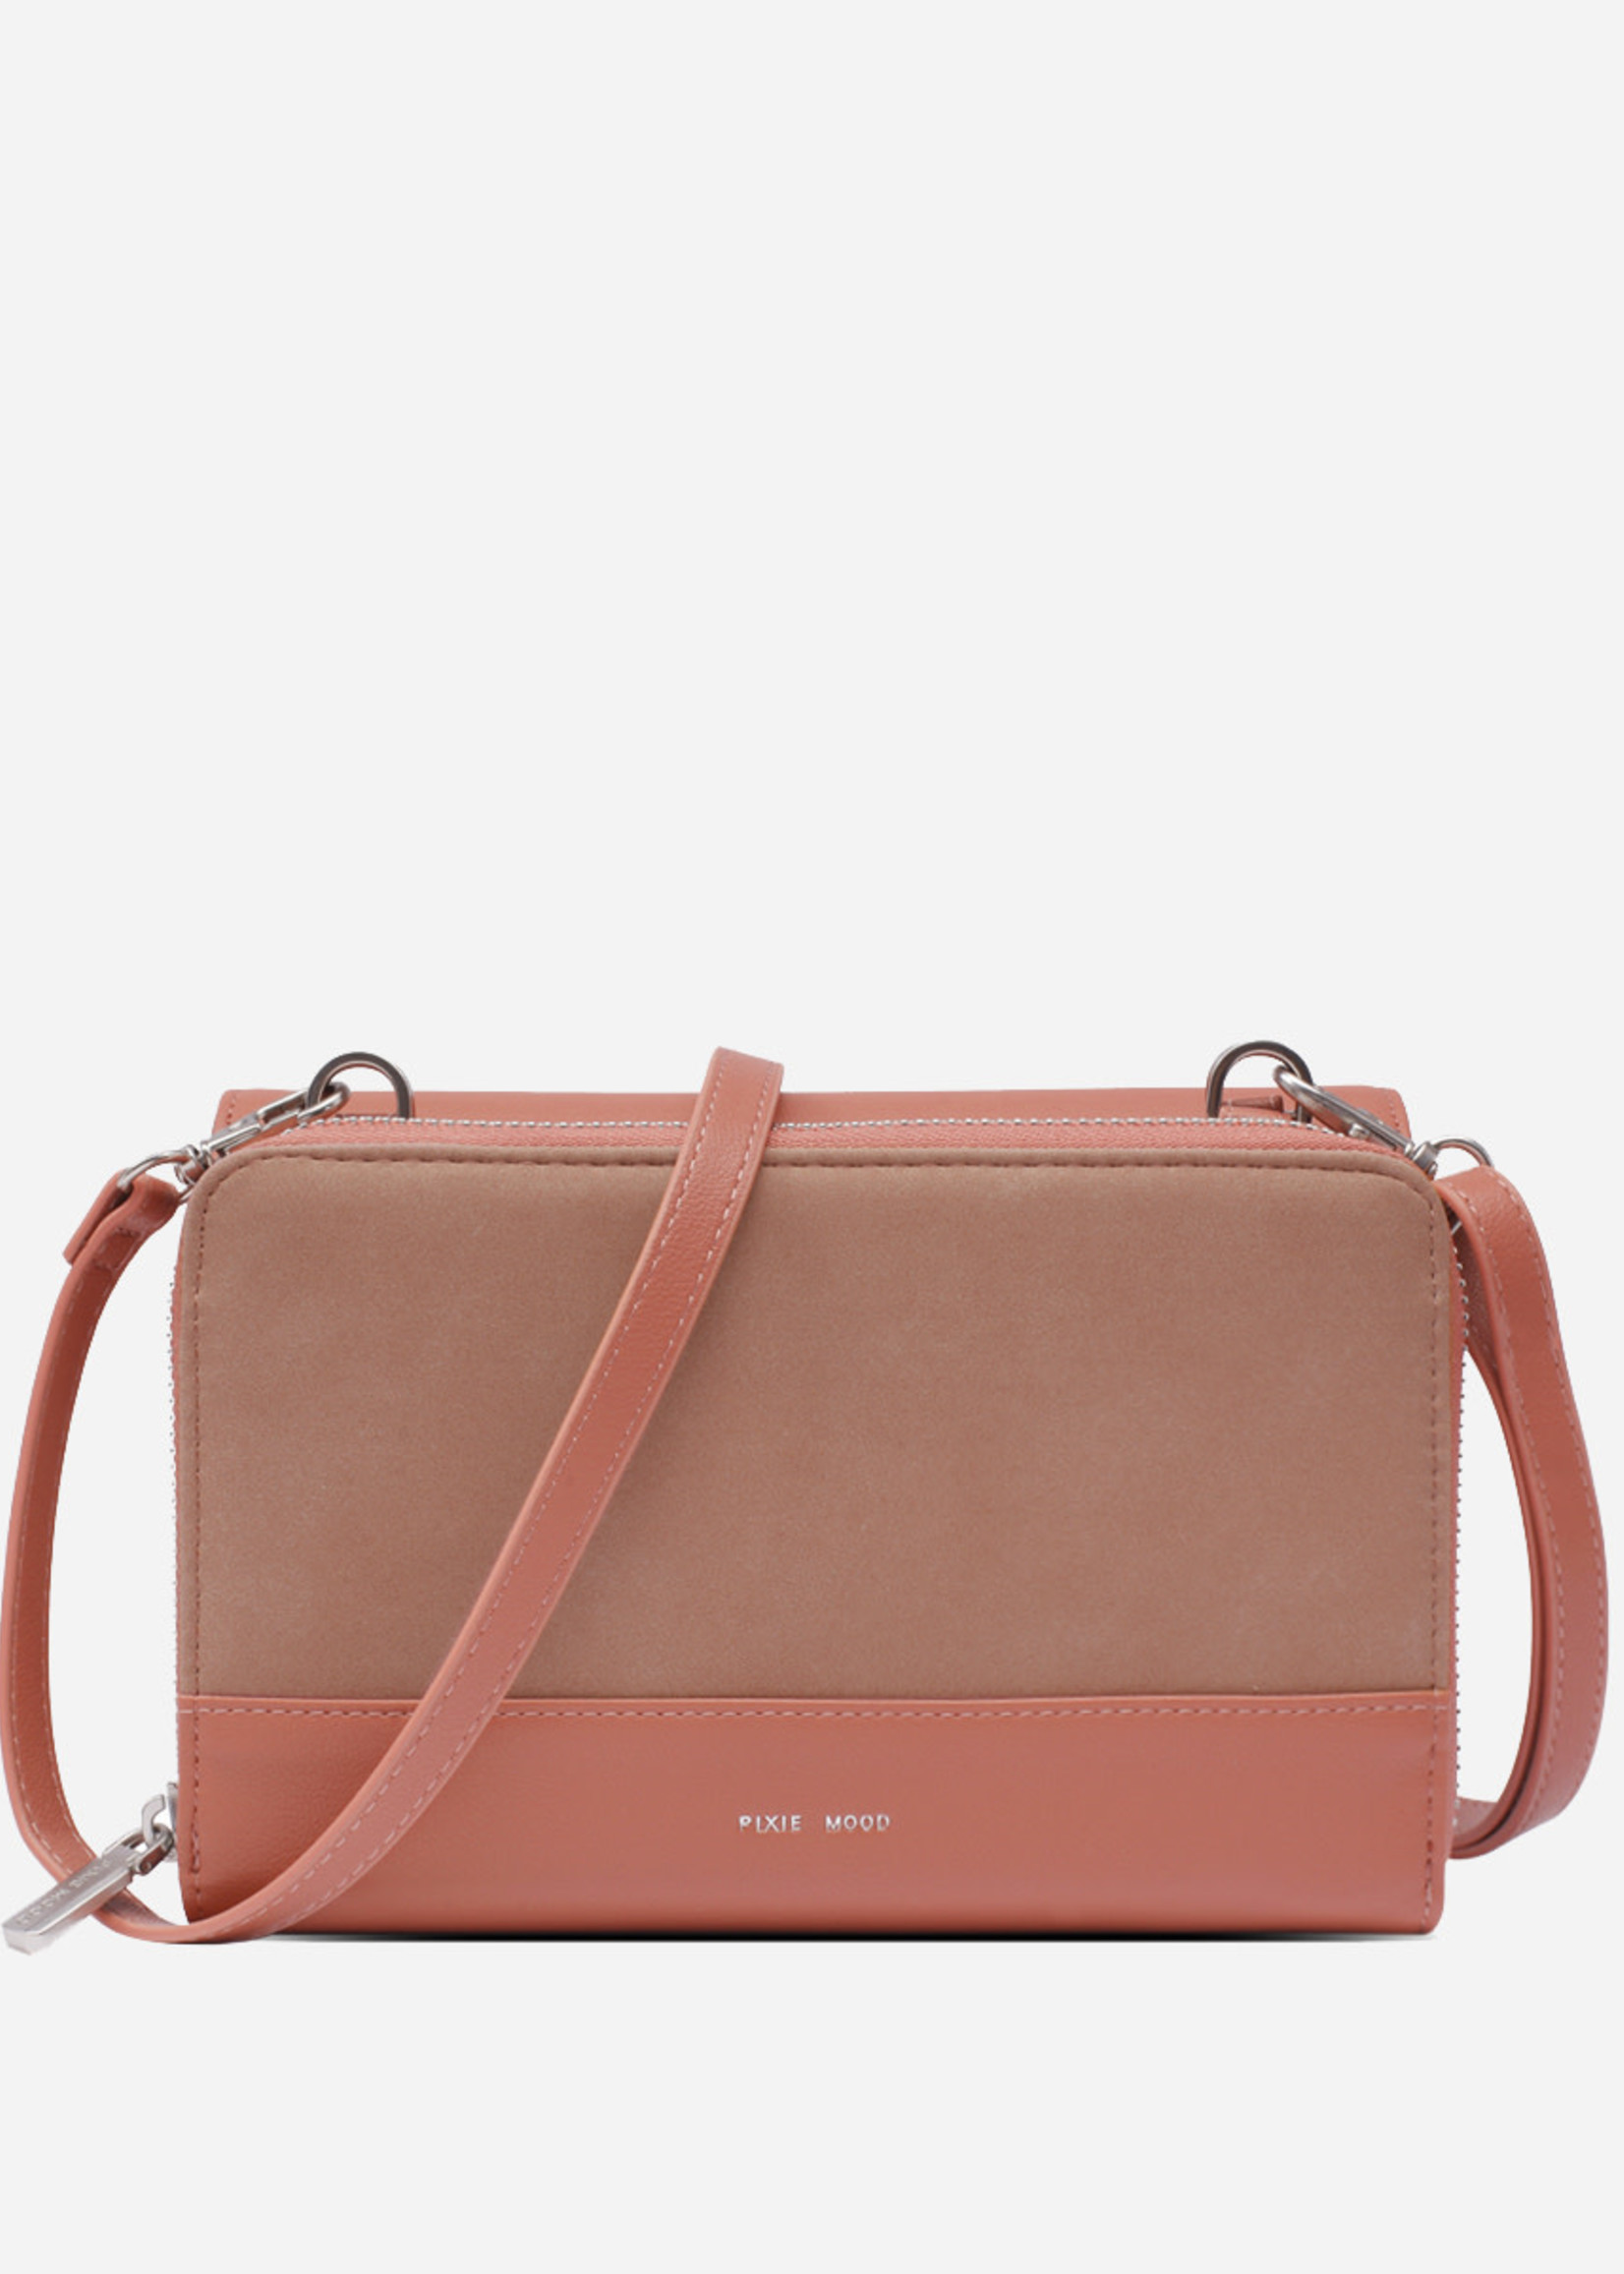 PIXIE MOOD Jane Crossbody DESERT CLAY